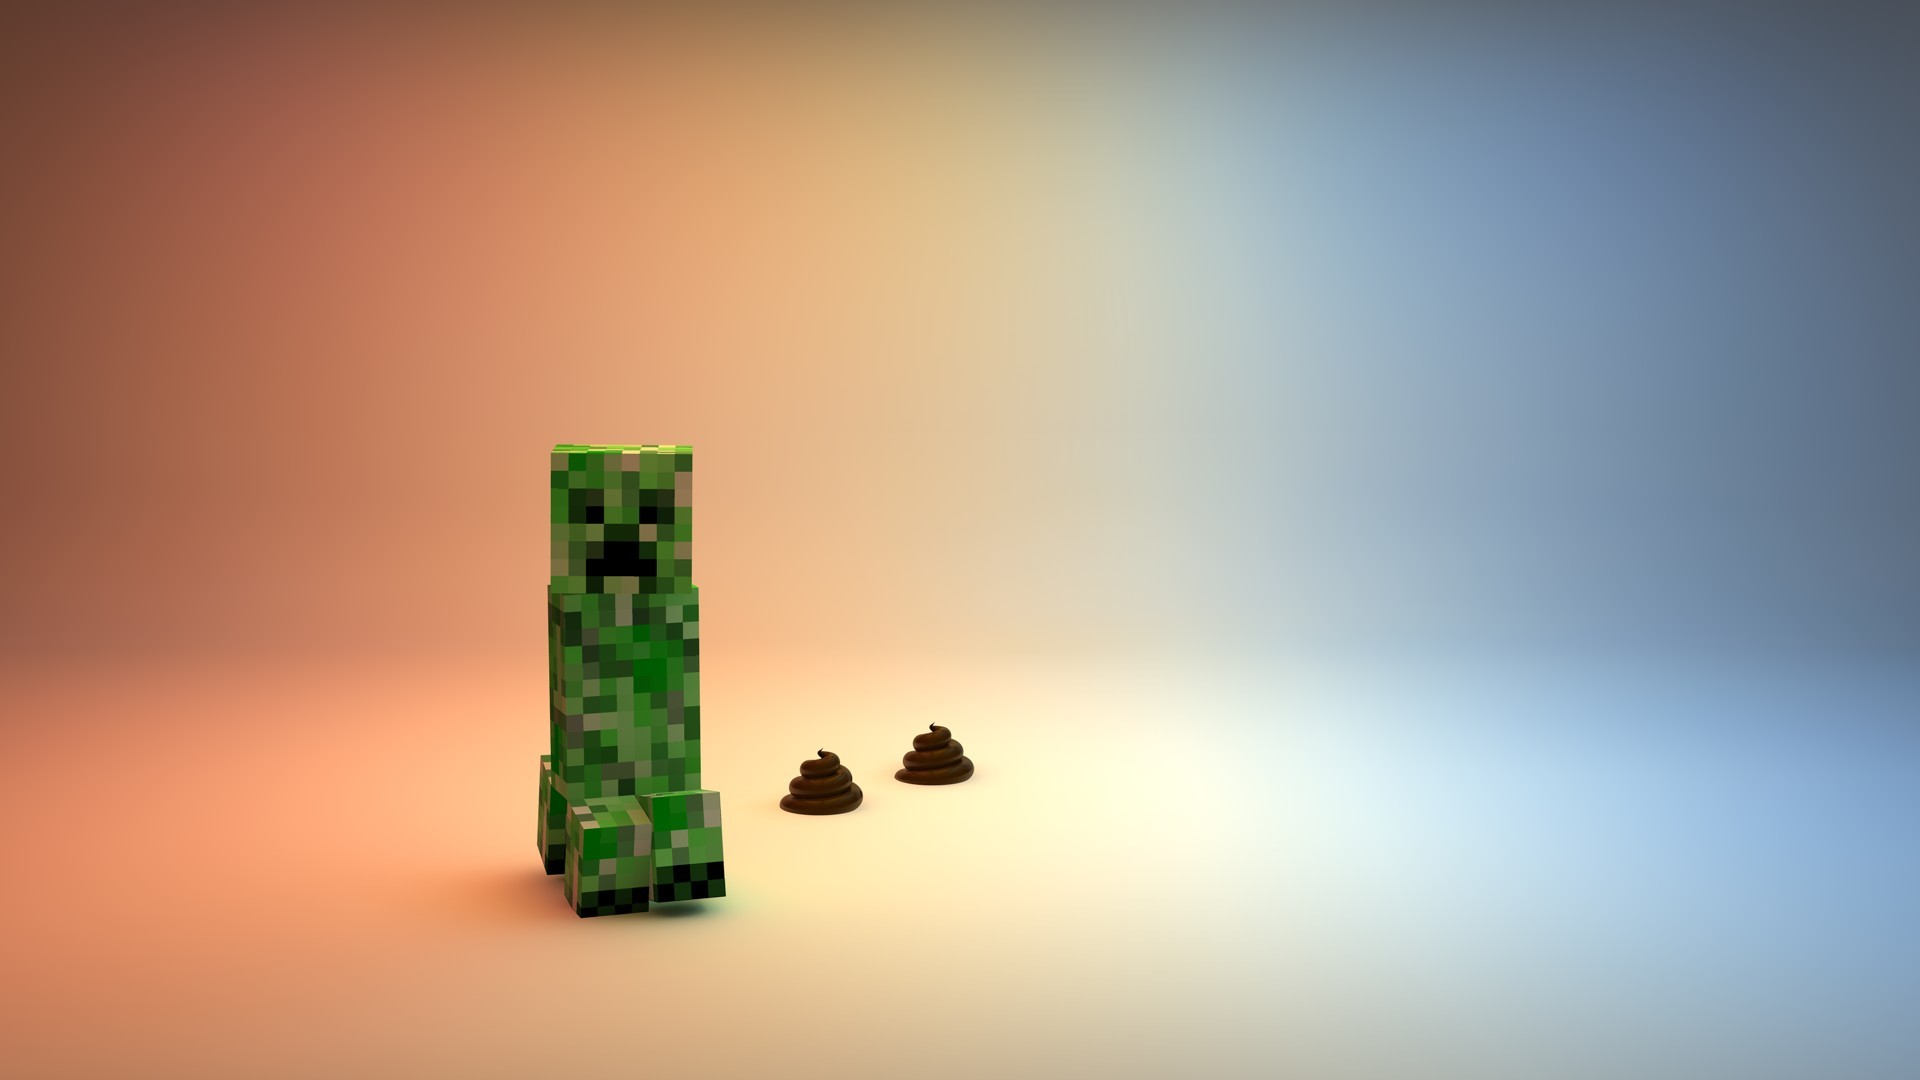 1920x1080 Creeper Minecraft Cool Pictures HD Wallpaper